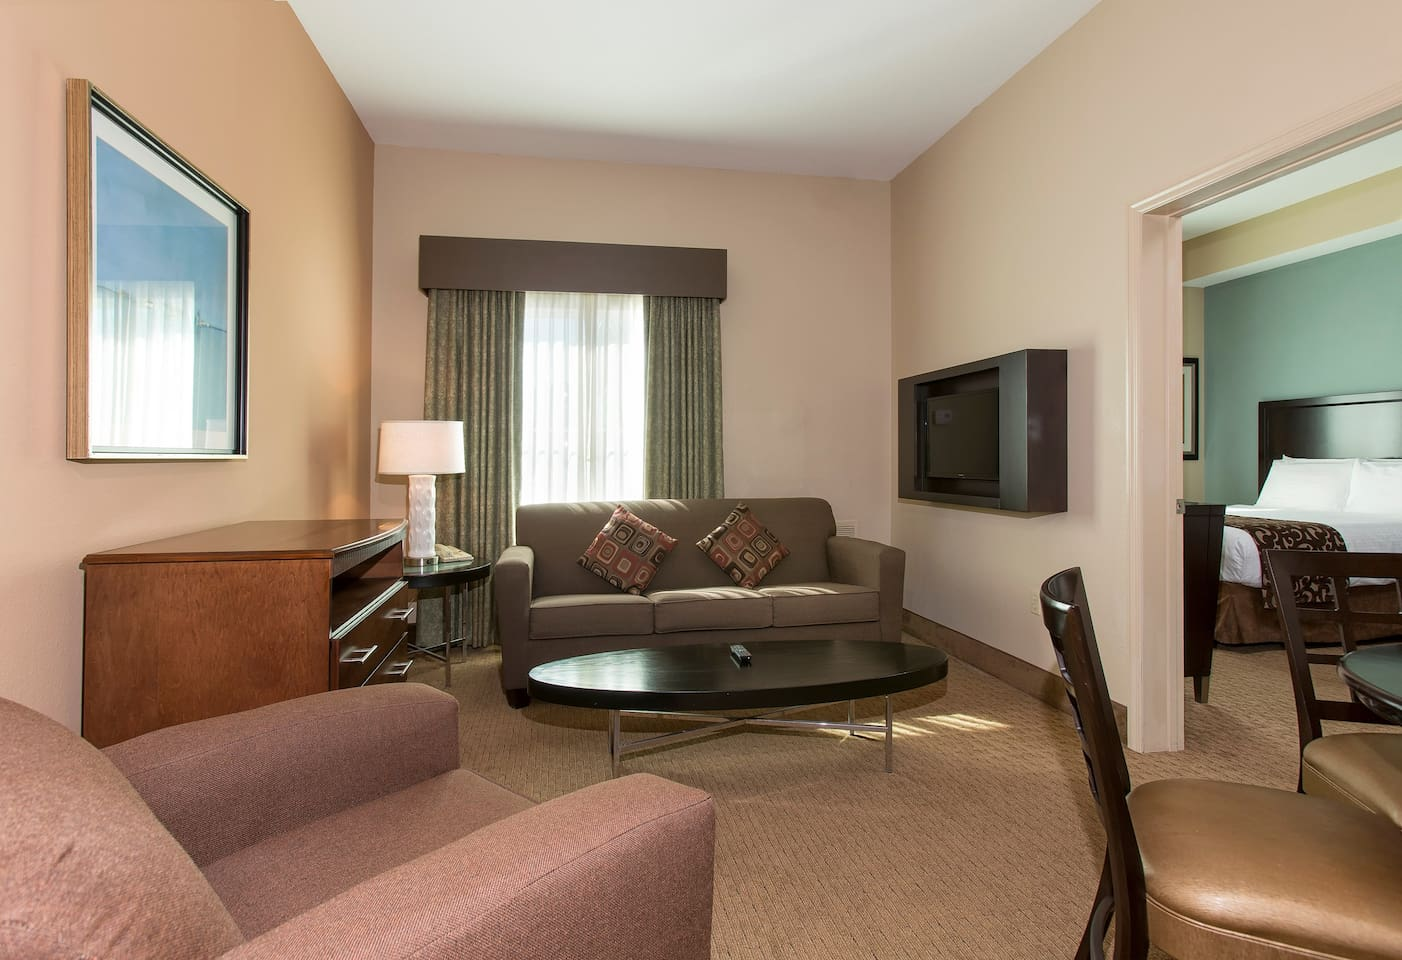 Relax on the sofa in our cozy and inviting suite after a day in the sun.